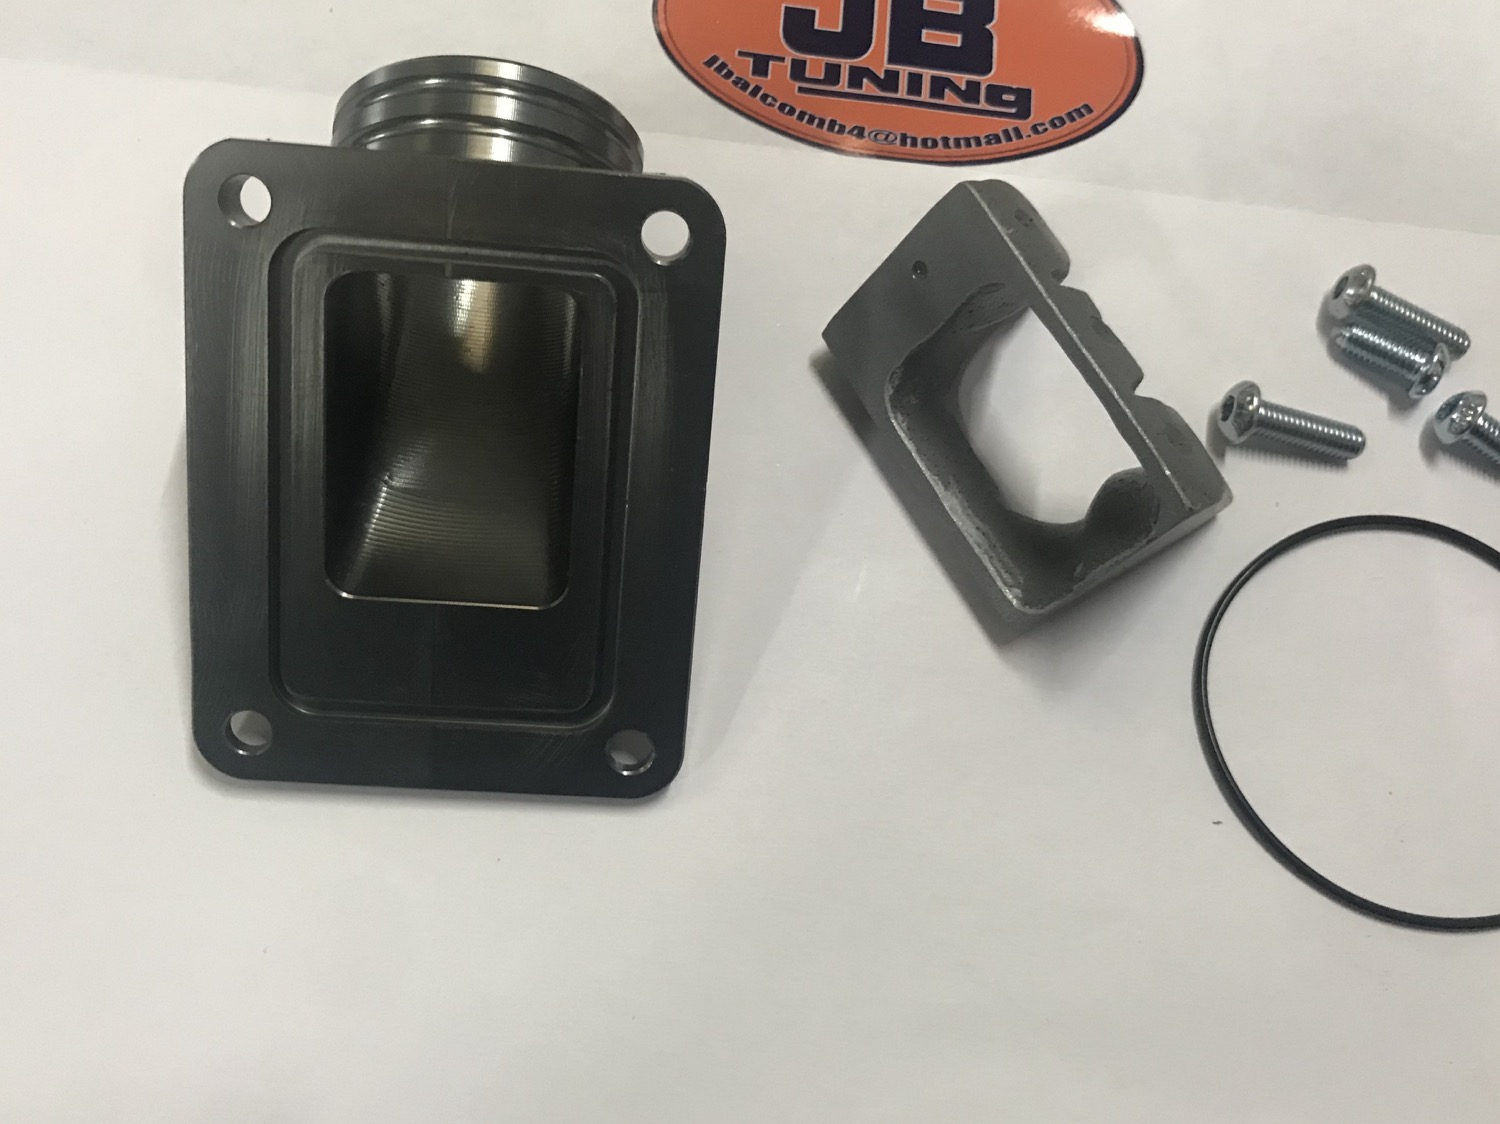 X58C casaperformance CNC Inlet for SS/SSR